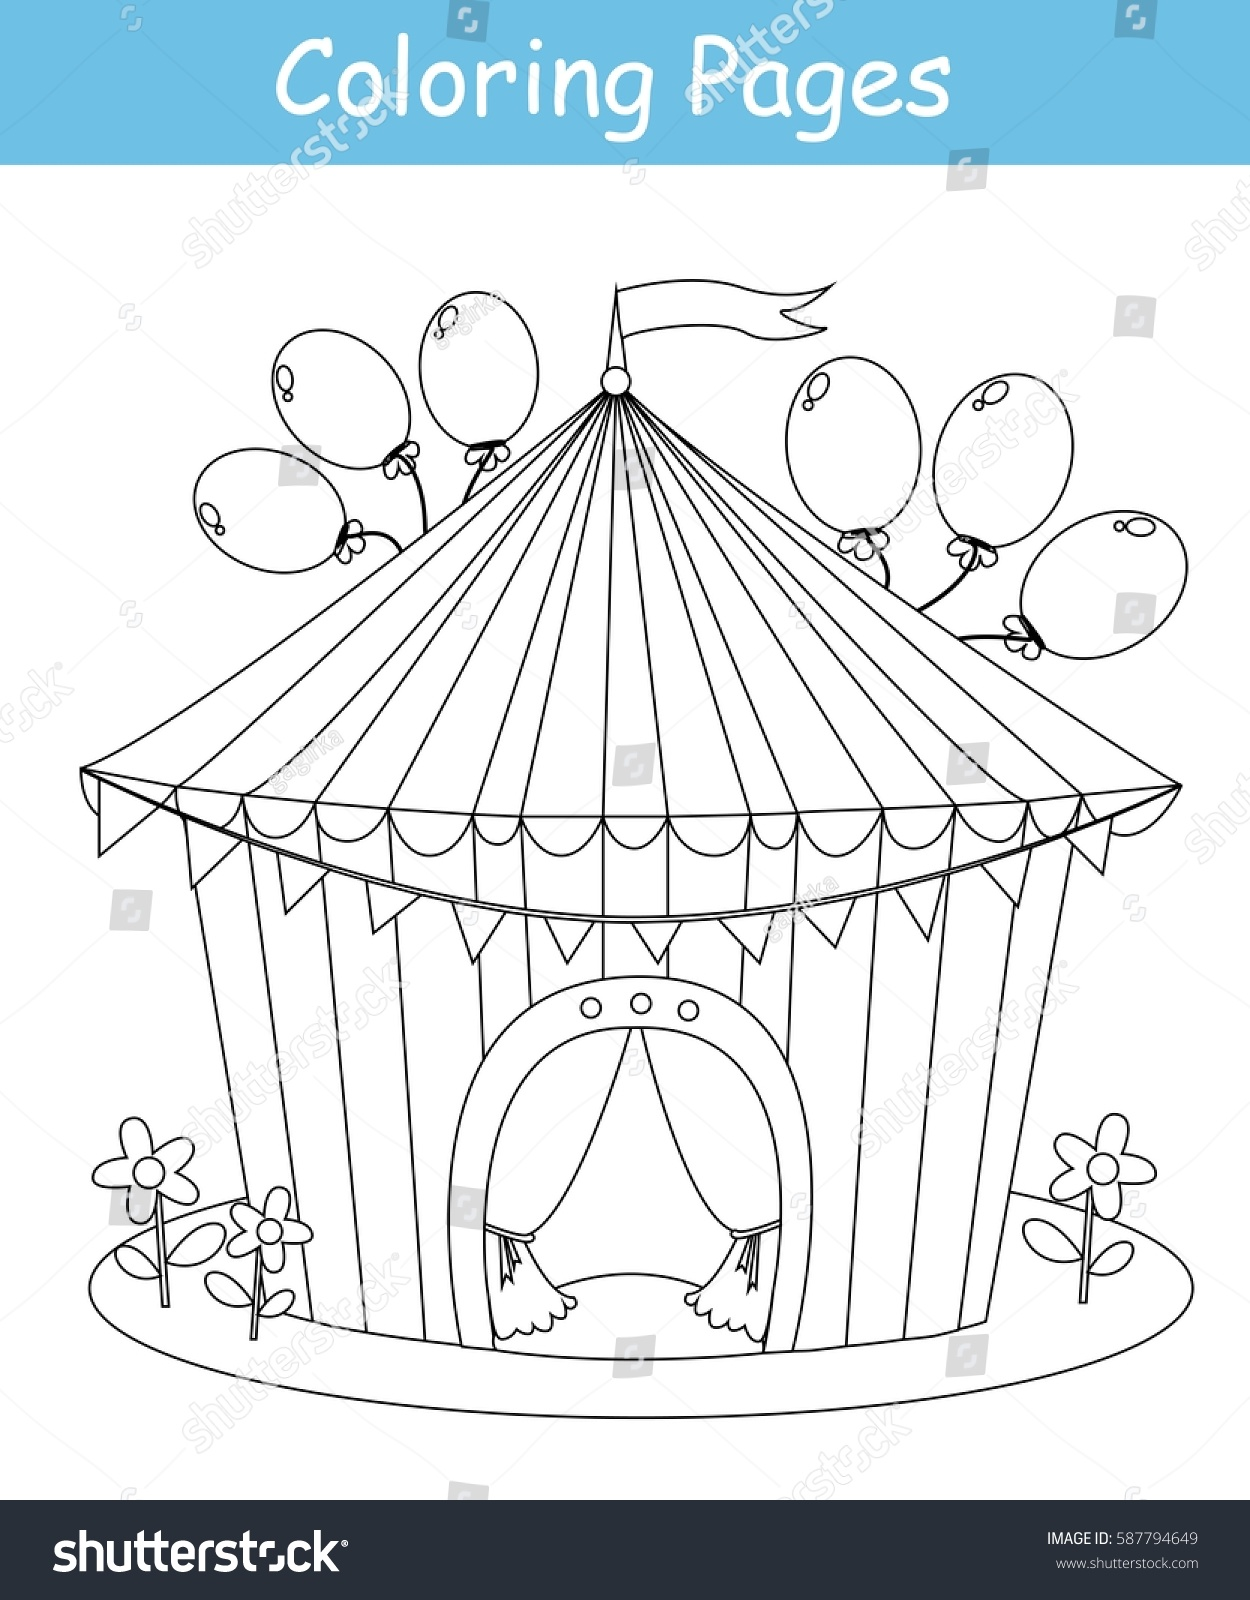 Coloring Page Circus Tent Vector Stock Vector (Royalty Free ...